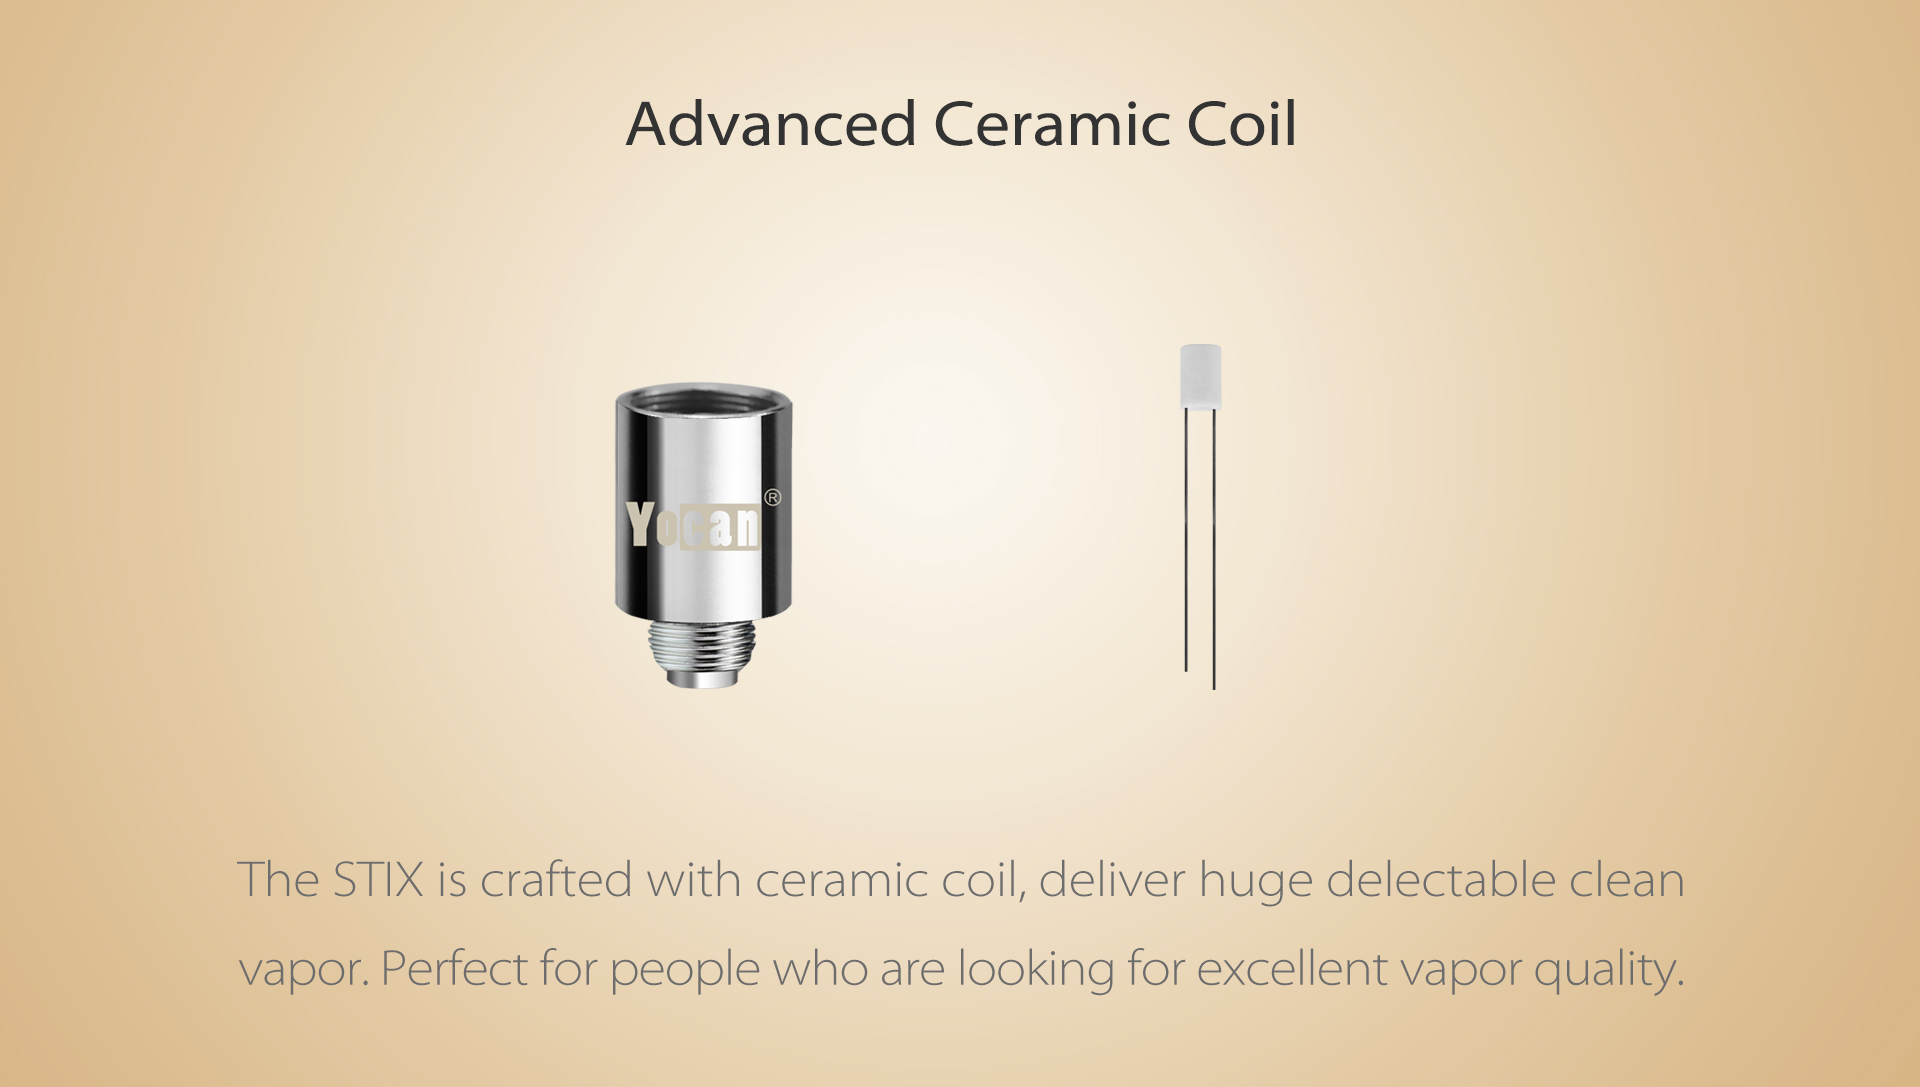 Yocan STIX Starter Vape Pen Kit is crafted with ceramic coil.